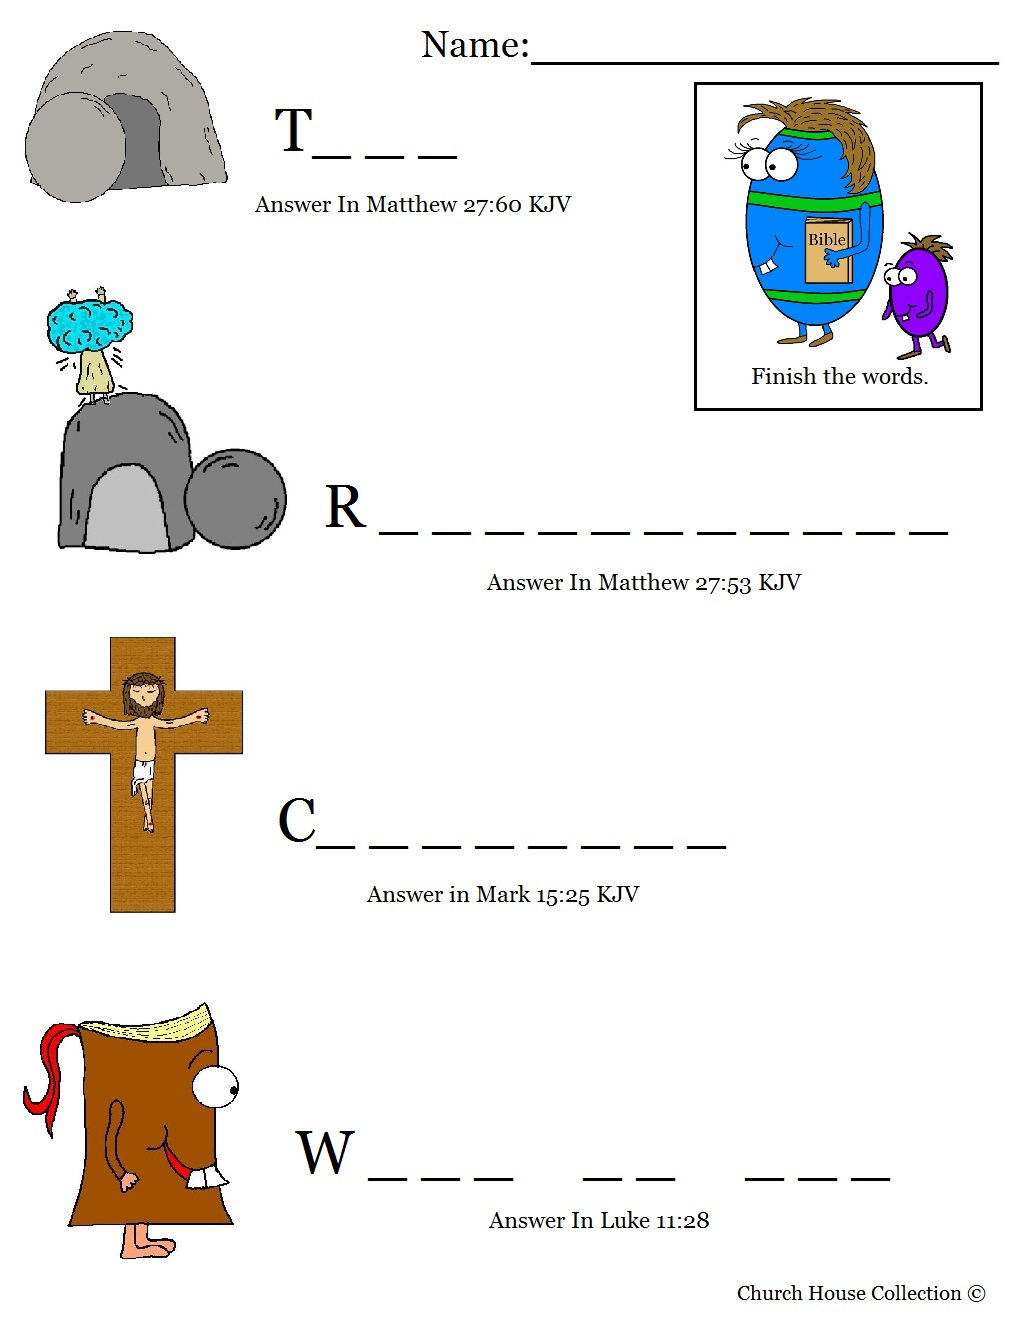 Easter Egg With Bible Fill In The Blanks Worksheet For Sunday School